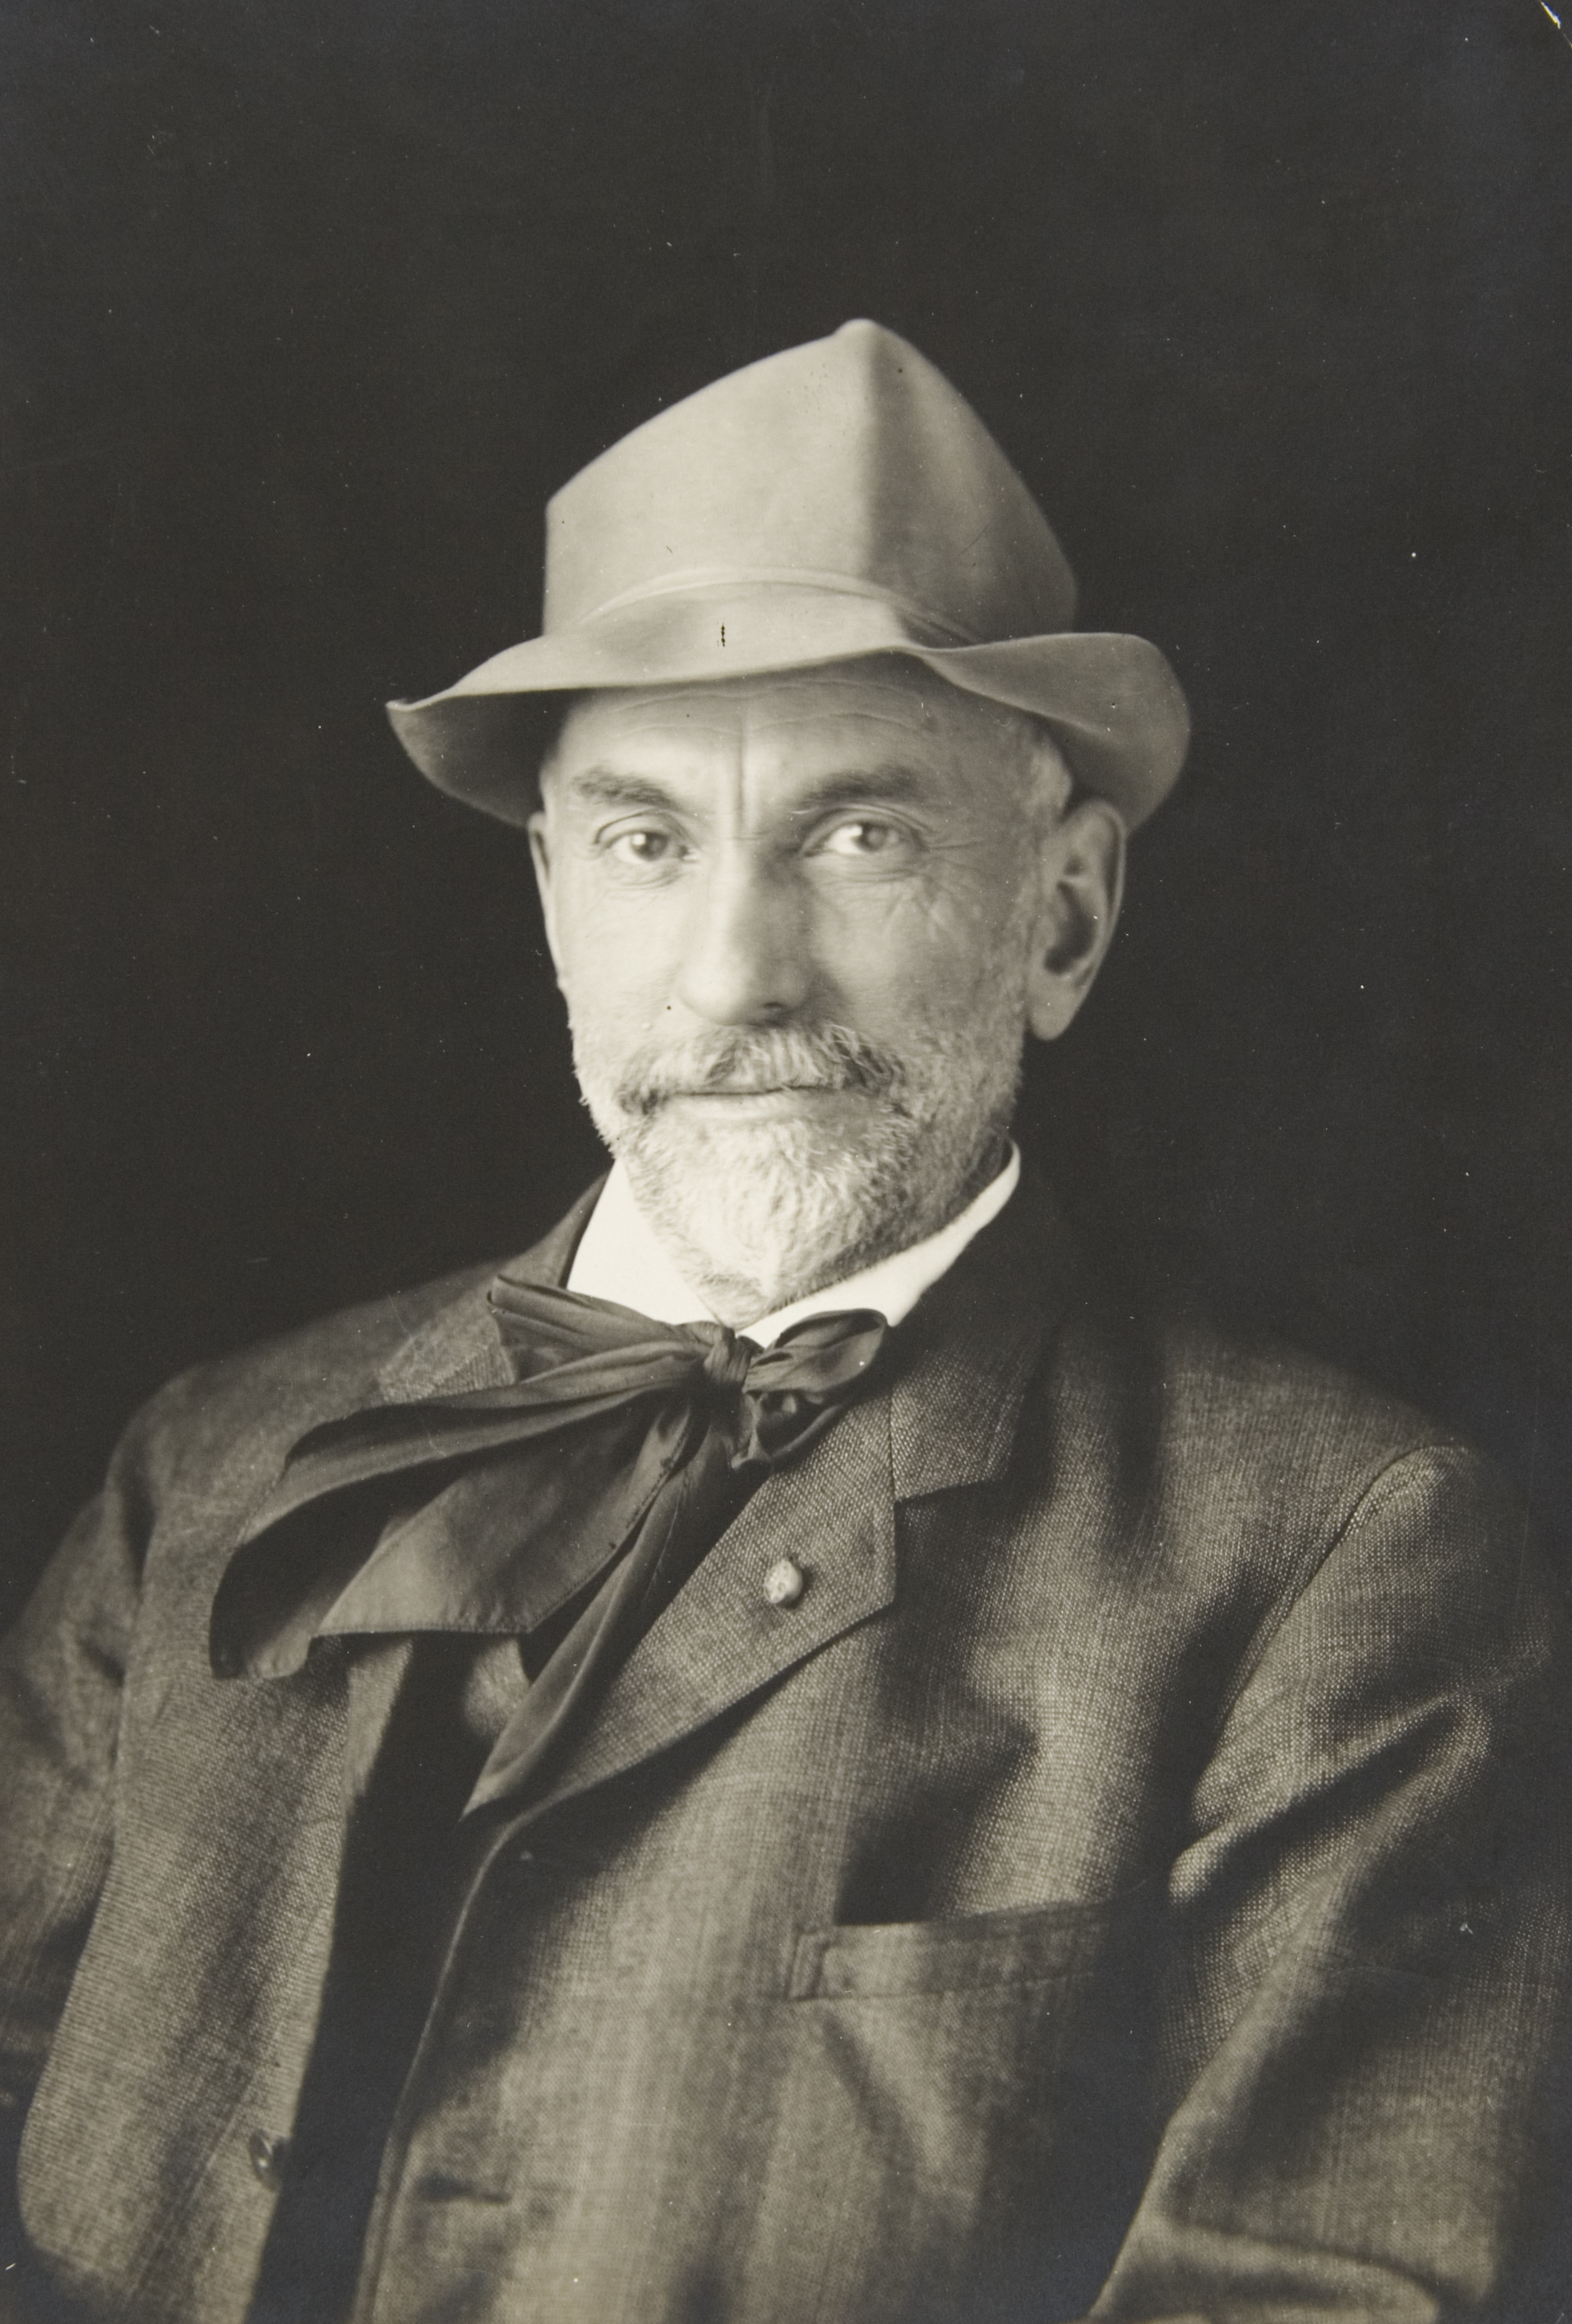 Old portrait photo of distinguished man with hat